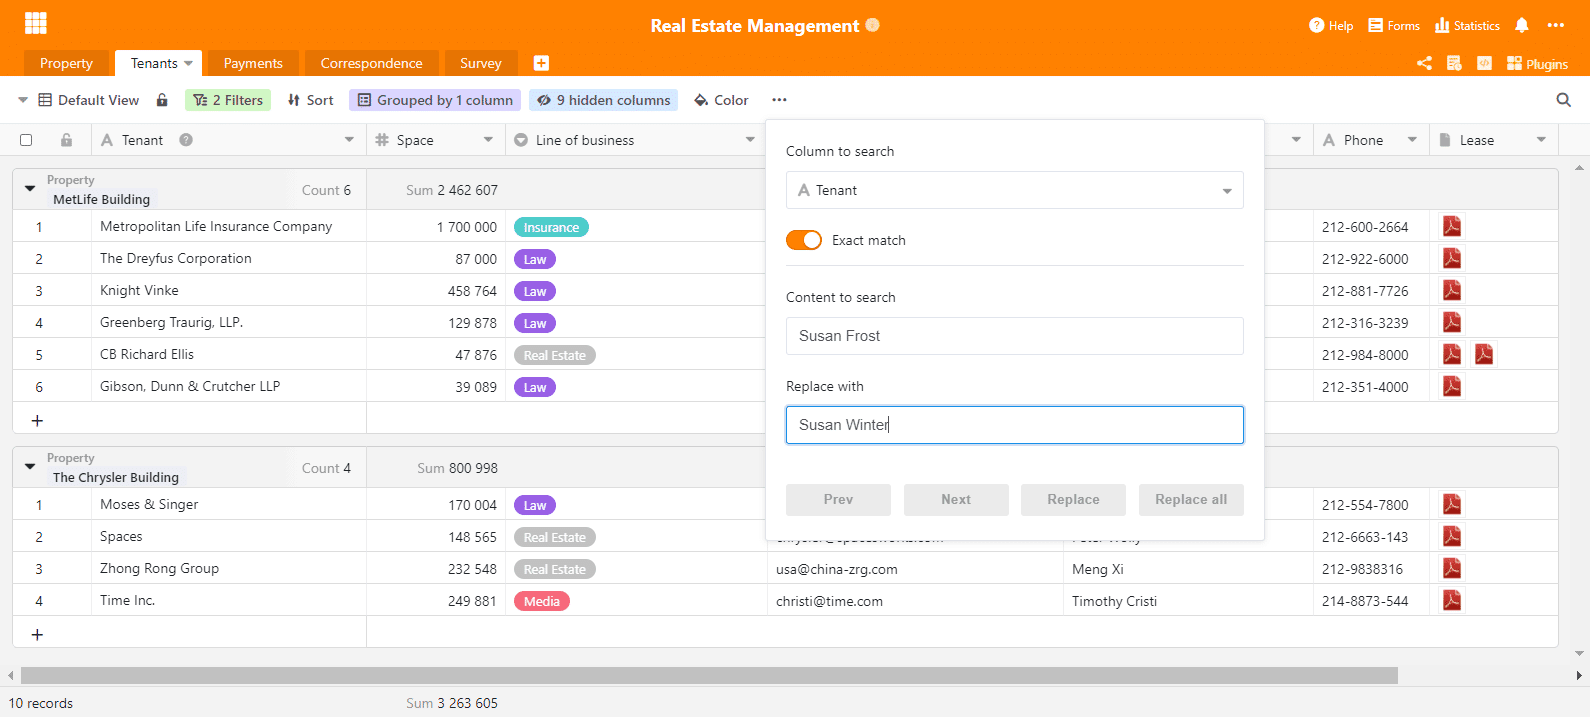 New feature in SeaTable 1.6.3: Batch replacement